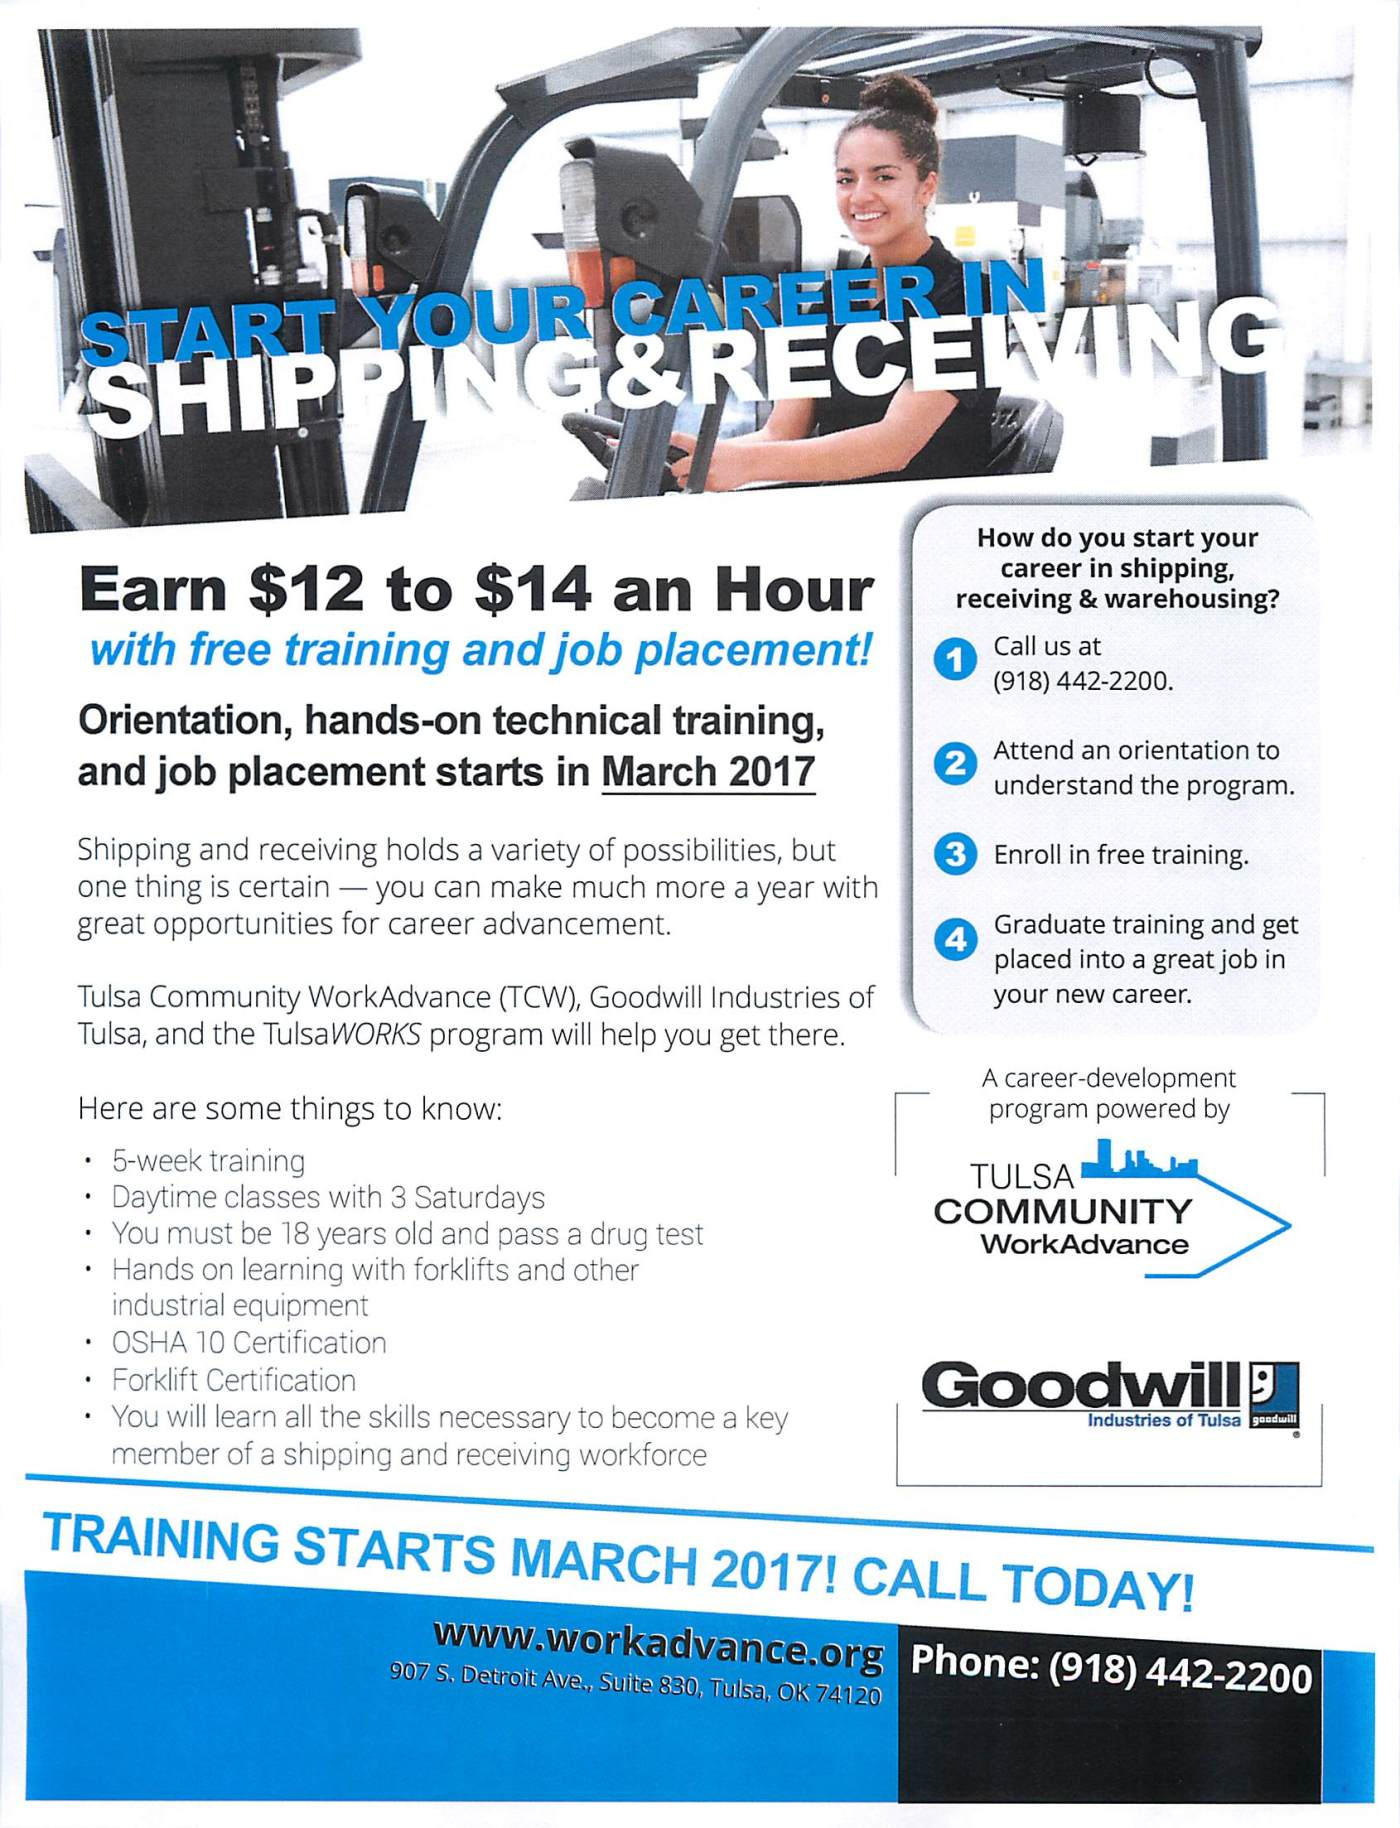 job training and placement for shipping receiving careers job training and placement for shipping receiving careers news you can use